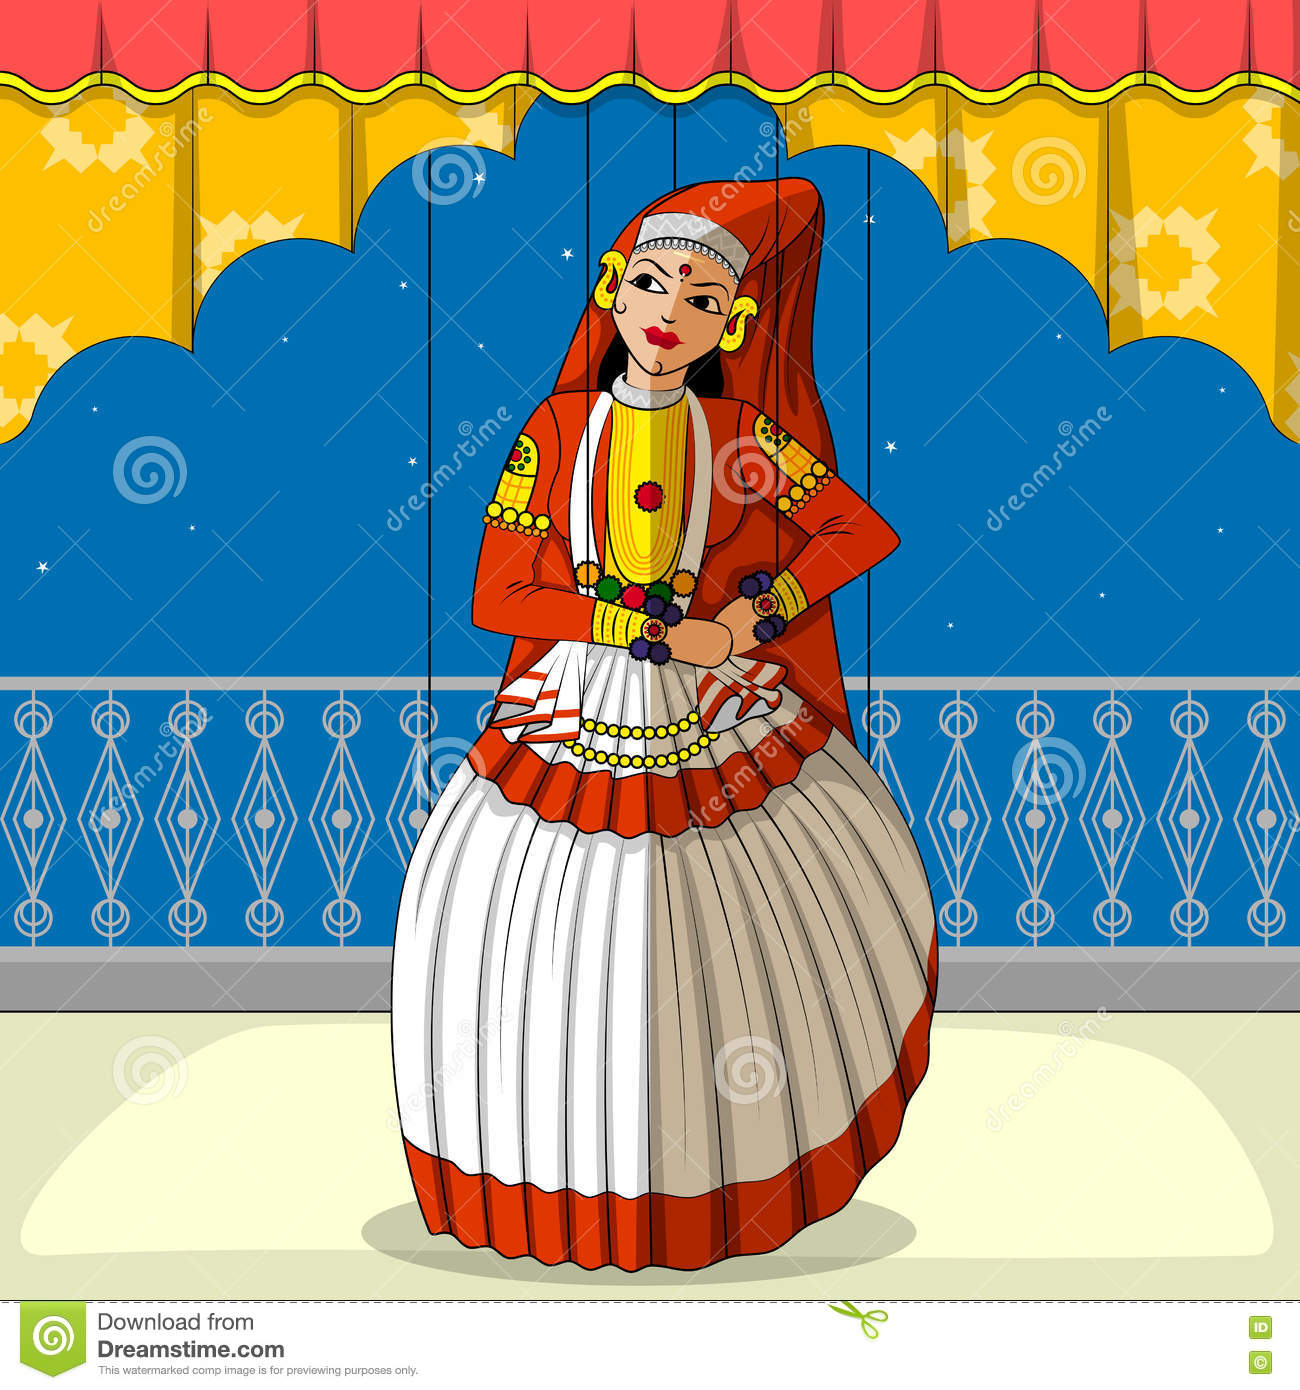 kathakali cartoons pictures illustrations - photo #34